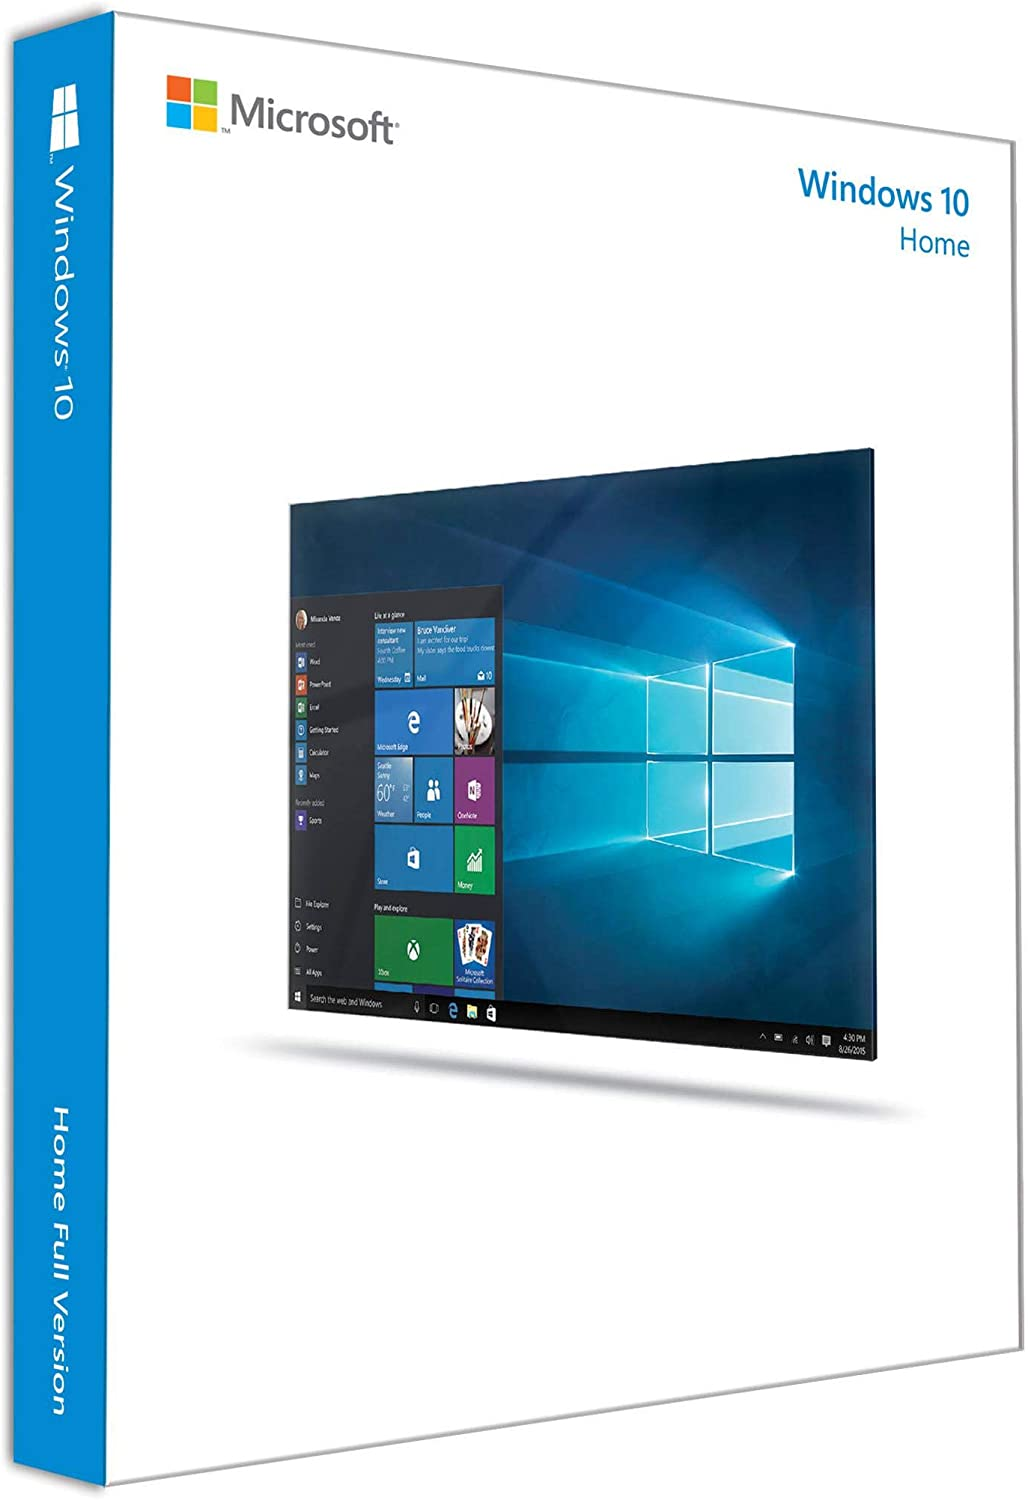 Microsoft KW9-00265 Windows 10 Home - License - 1 license - download - 32/64-bit, ESD - All Languages